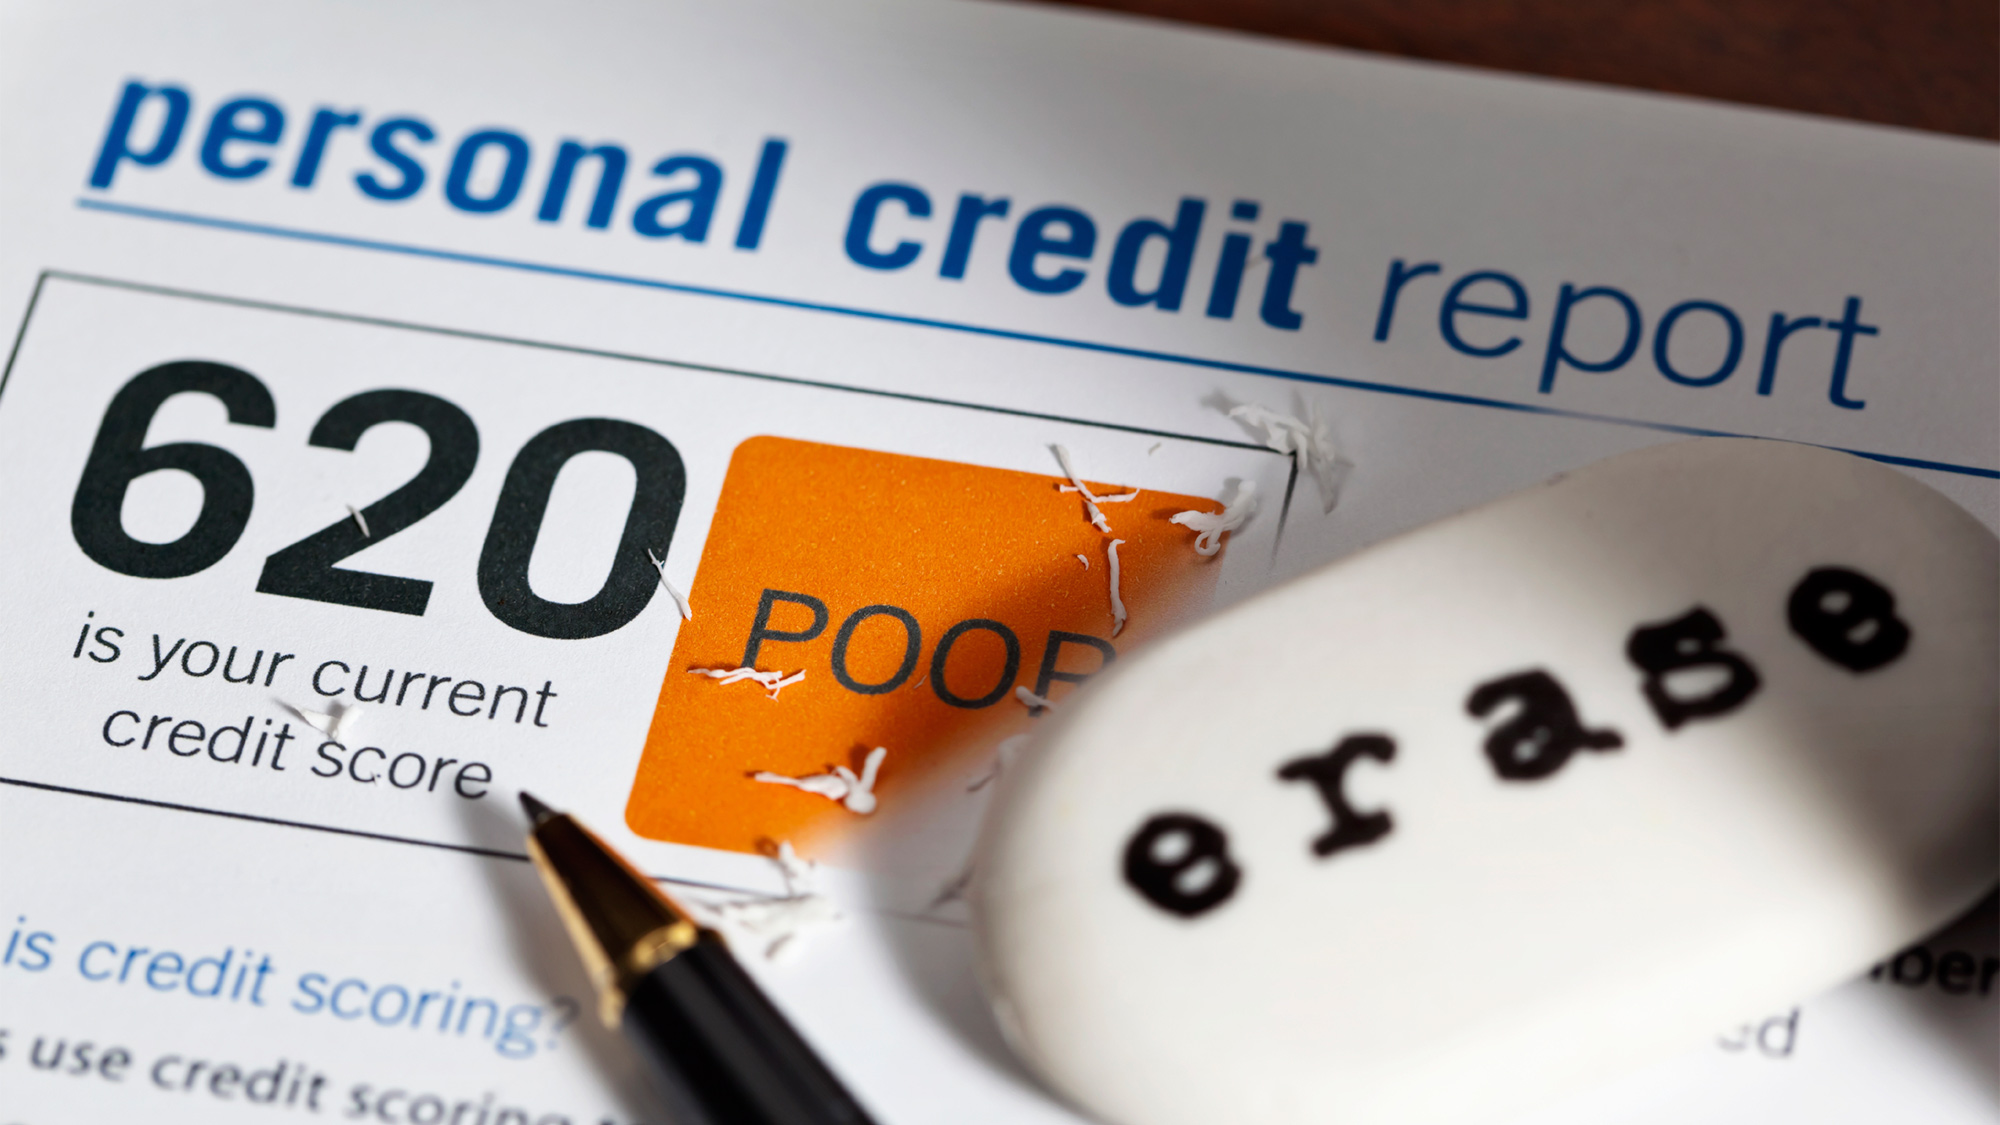 So You Wanna Buy a House? Step 1: Clean Up Your Credit Score – Real Estate News and Advice – realtor.com